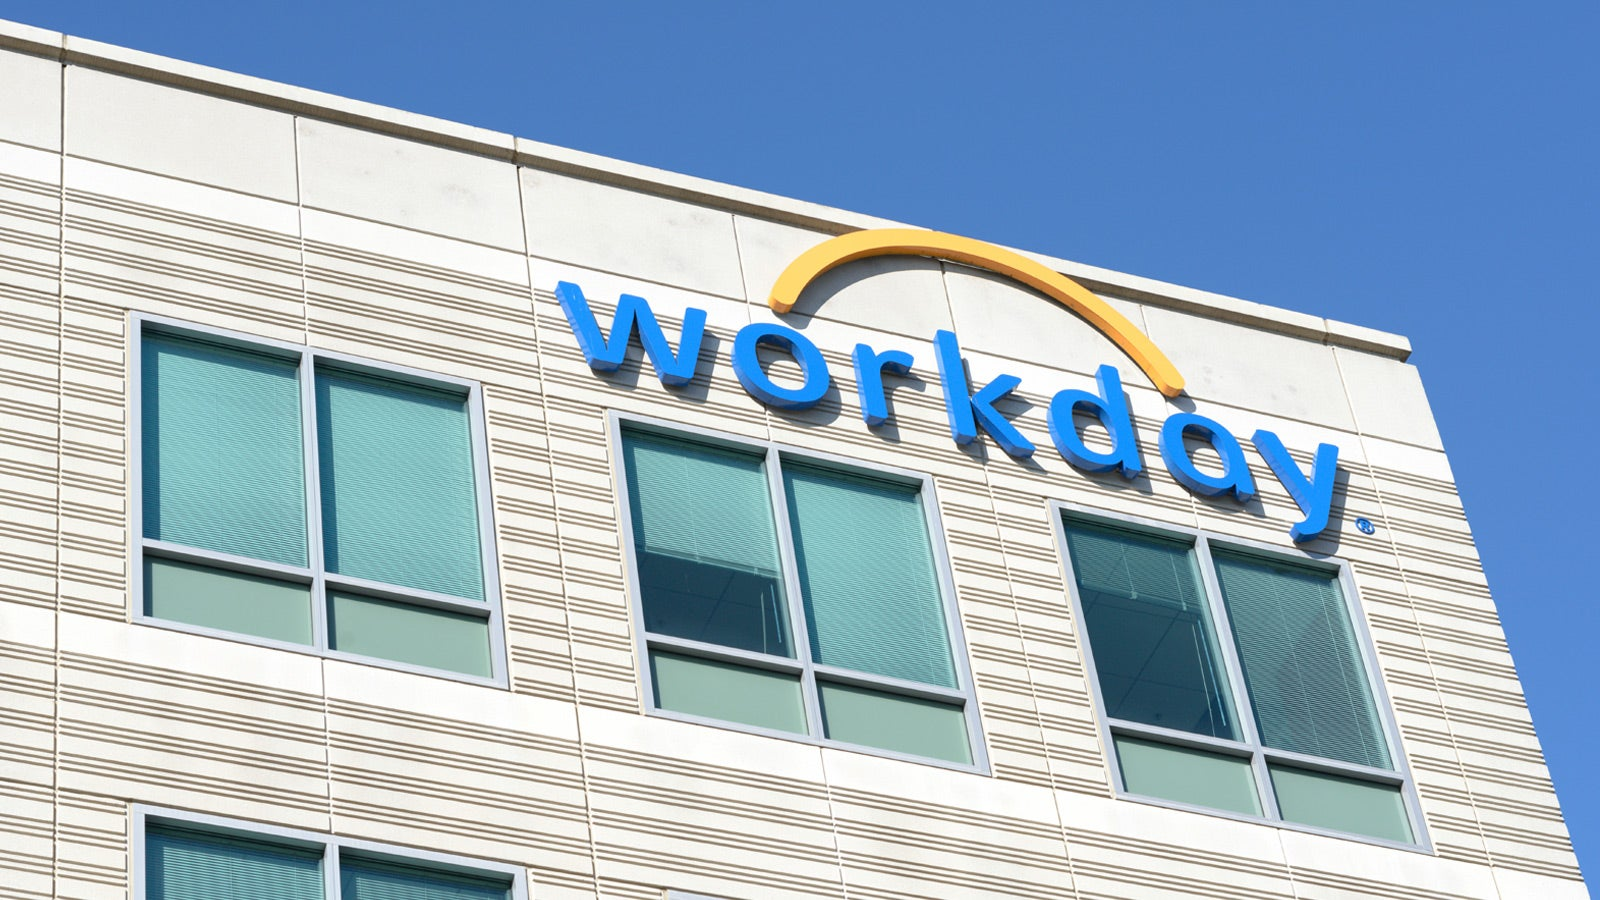 Workday office building with blue and yellow company logo on the side.